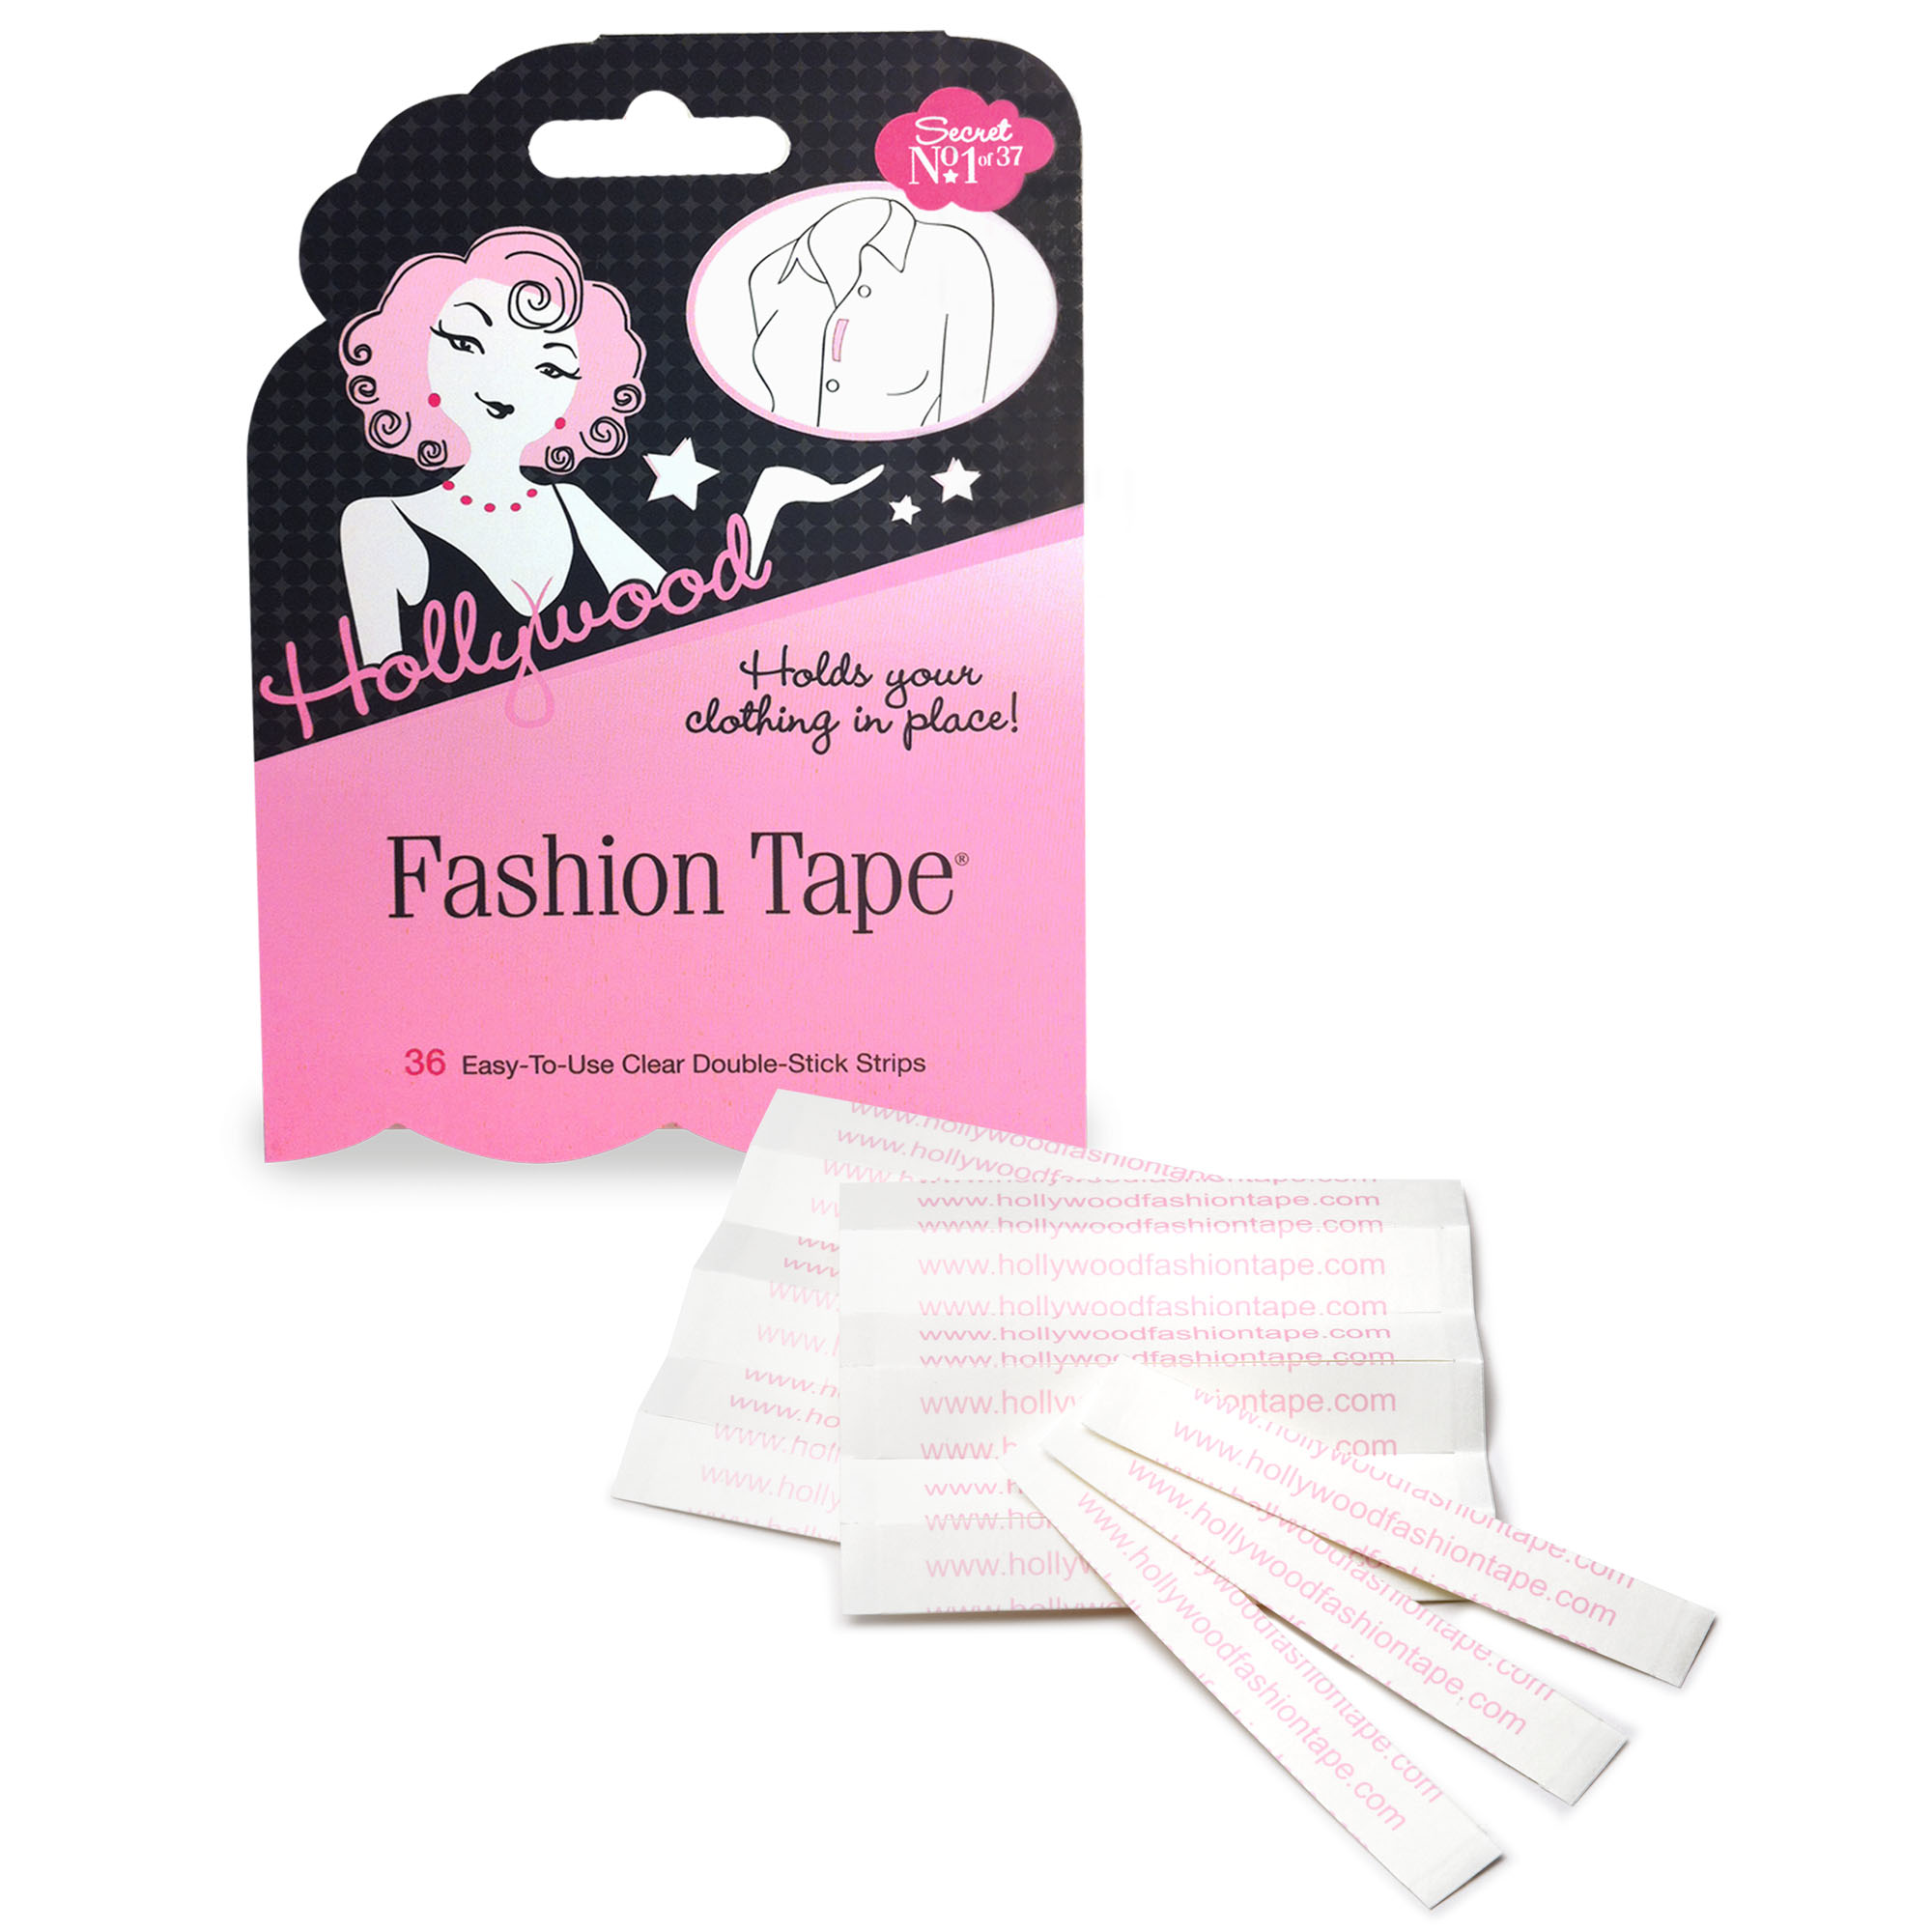 Hollywood Fashion Secrets Fashion Apparel and Body Tape 36 ct, Flat Pack